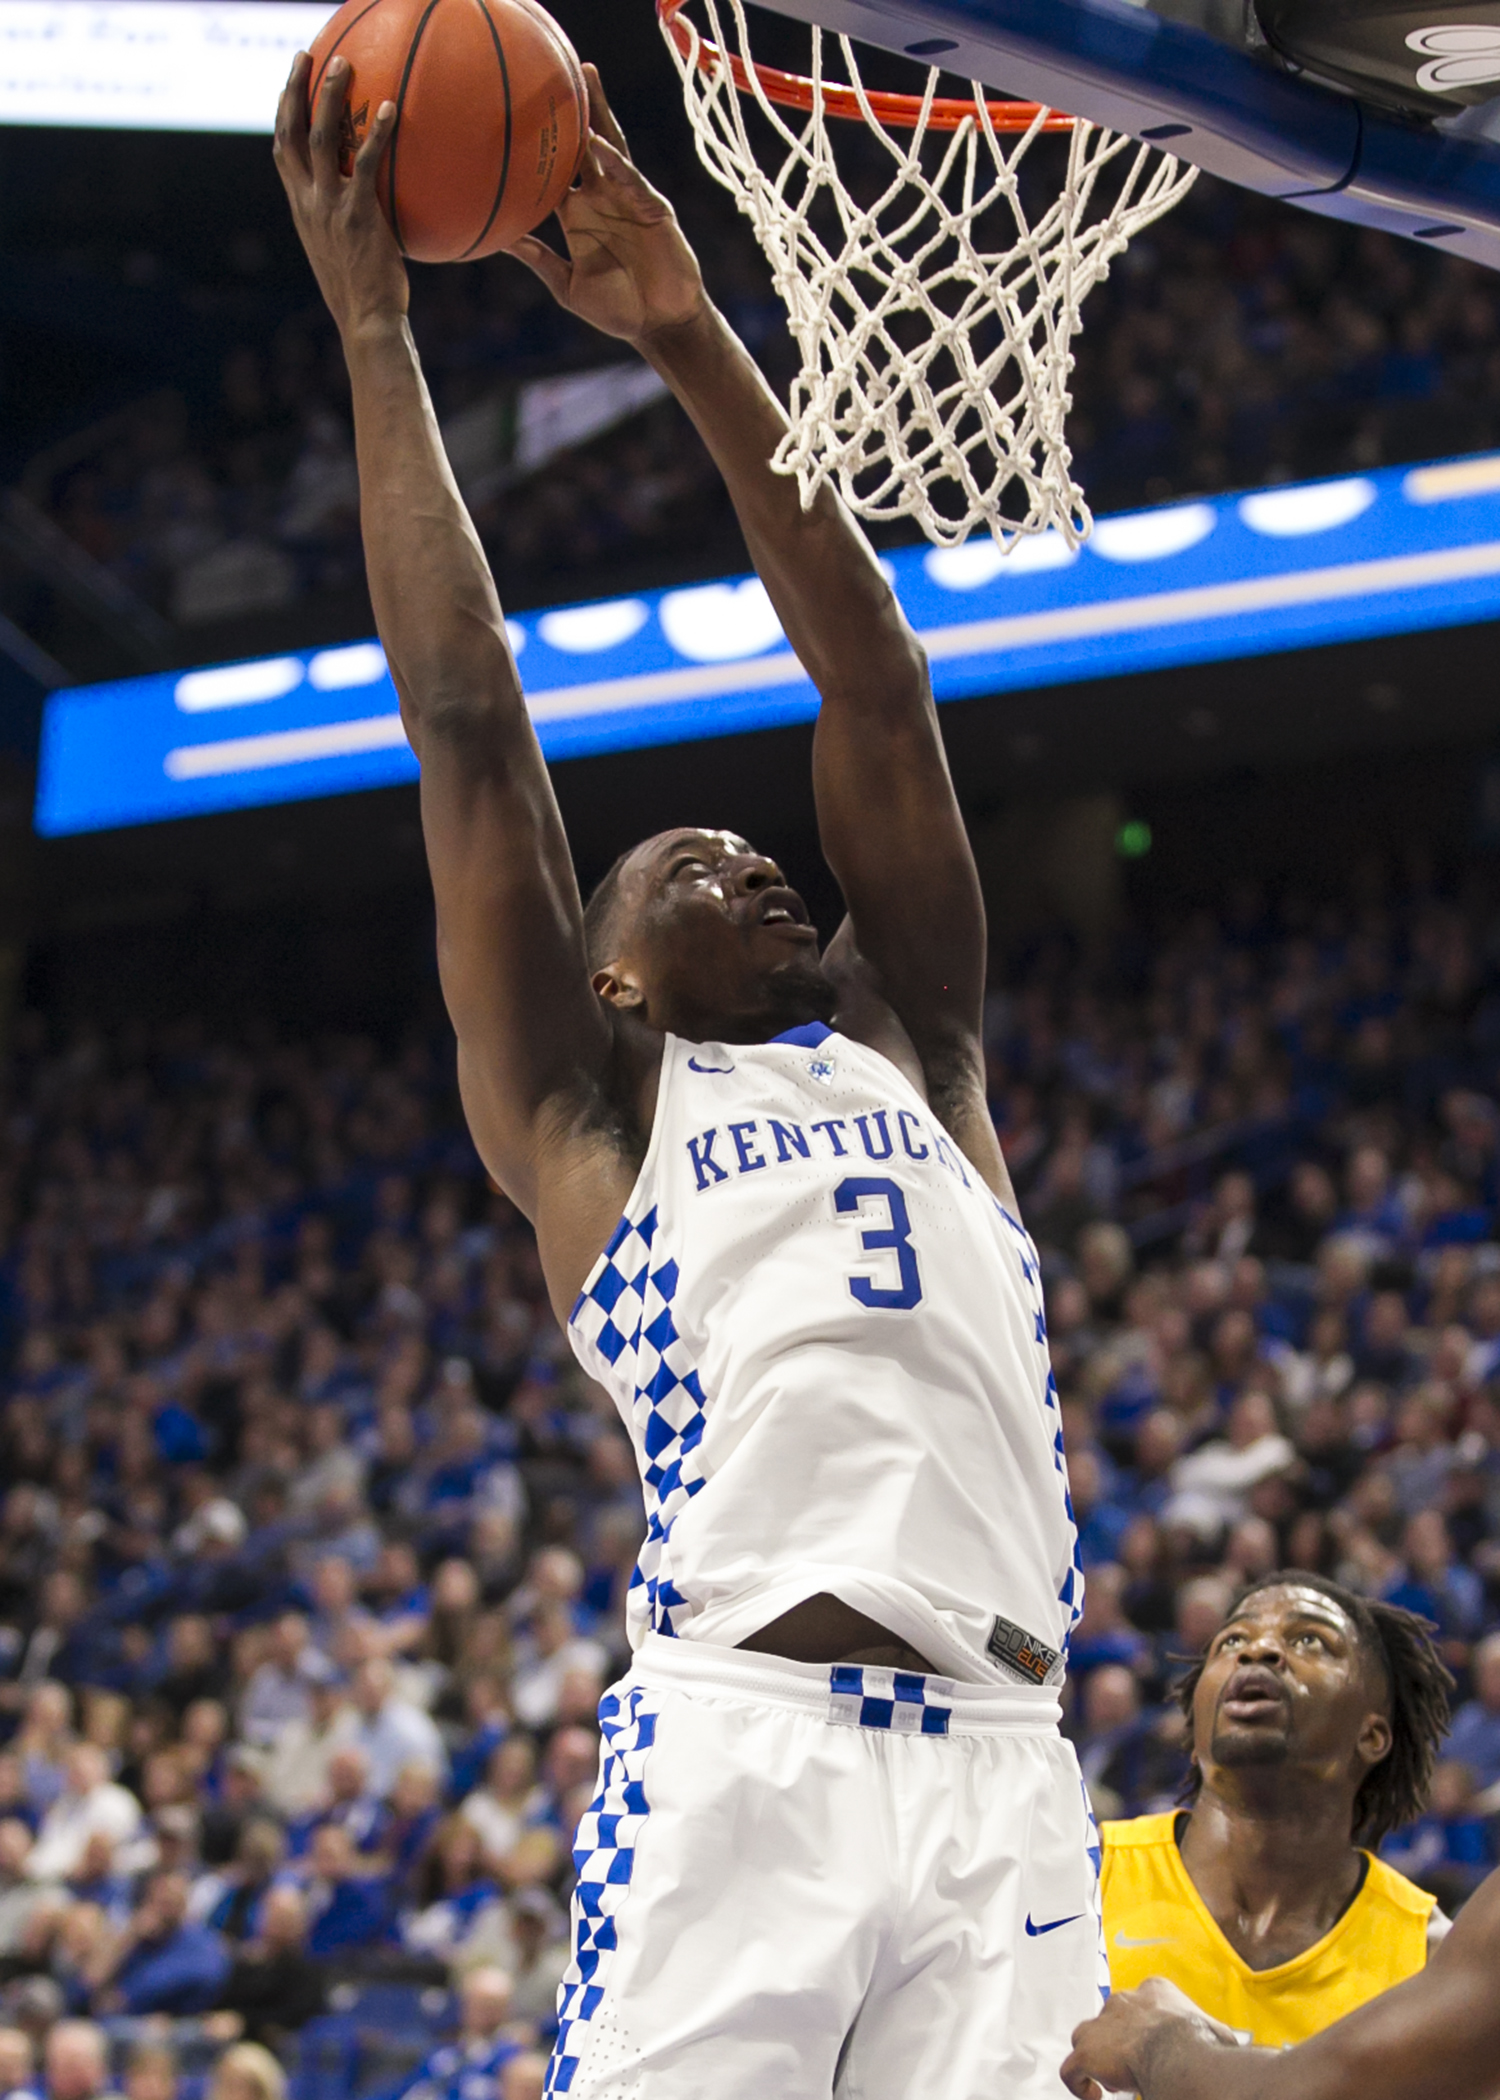 Going into this week's action, Bam Adebayo  is among the leading rebounders in the SEC, ranking No. 4 with an average of 8.0 rebounds. He is also averaging 12.6 points (fourth highest on the squad) and has blocked a team-high 18 shots (Tammie Brown Photo)